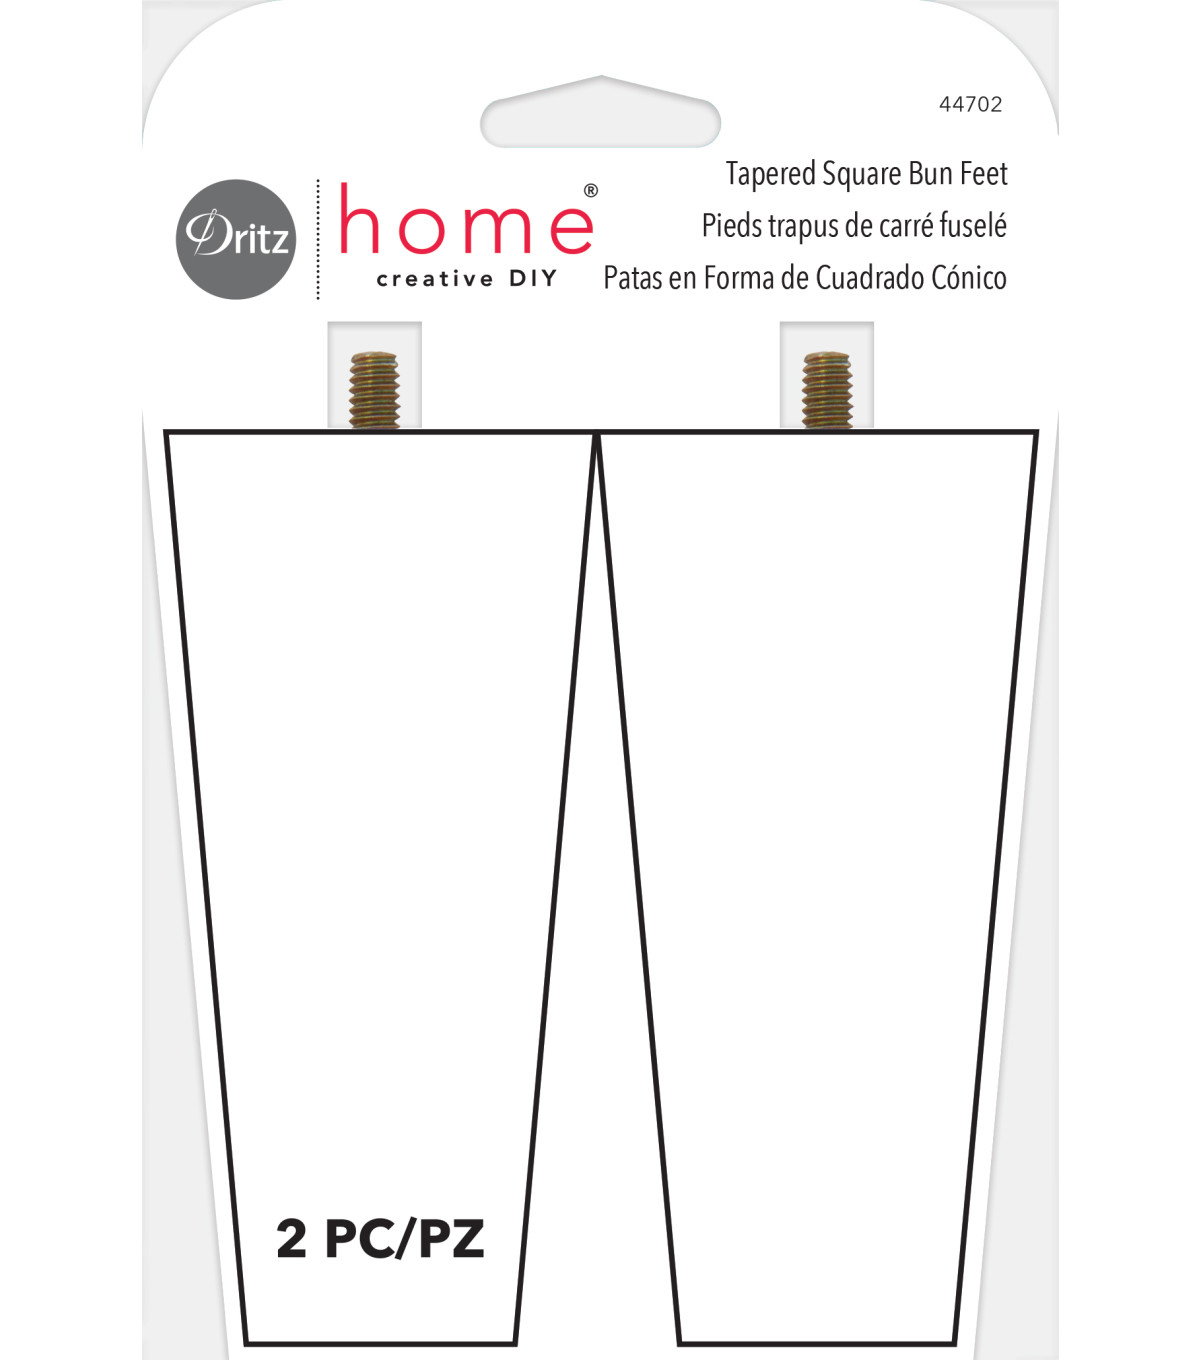 Dritz Home Tapered Square Bun Feet